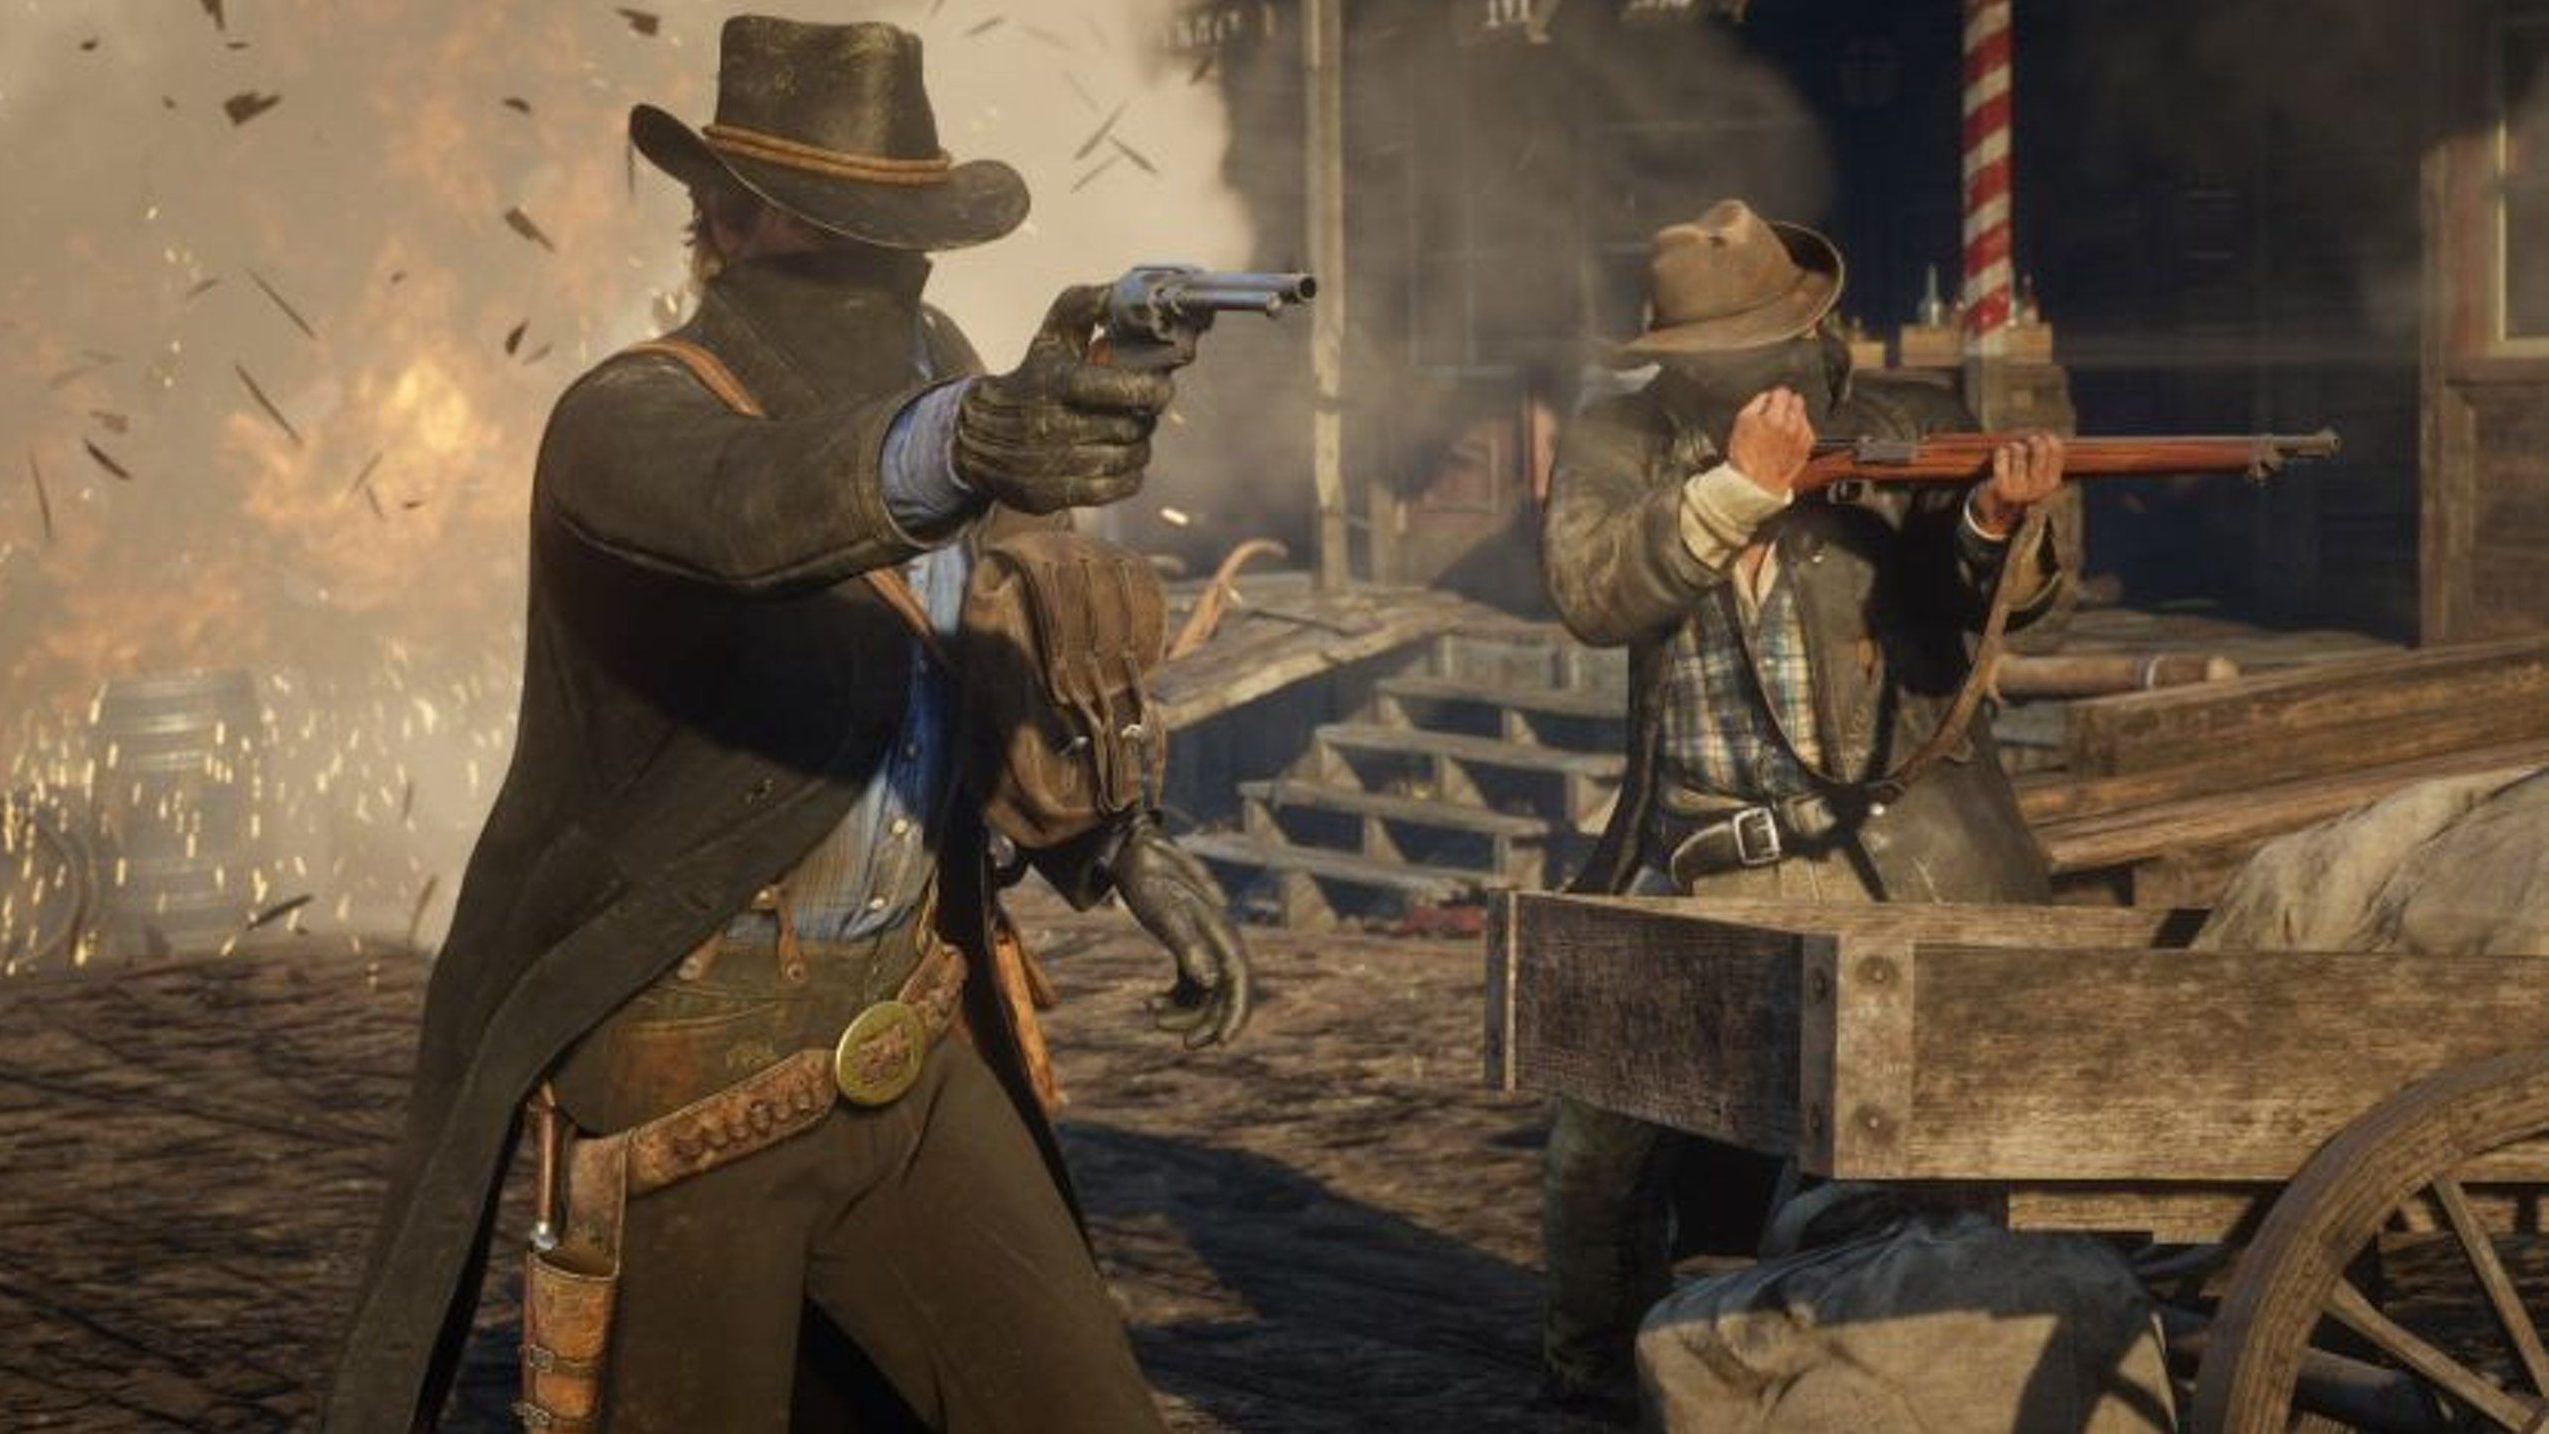 ork over cash in exchange for using the Pinkerton name inRed Dead Redemption 2